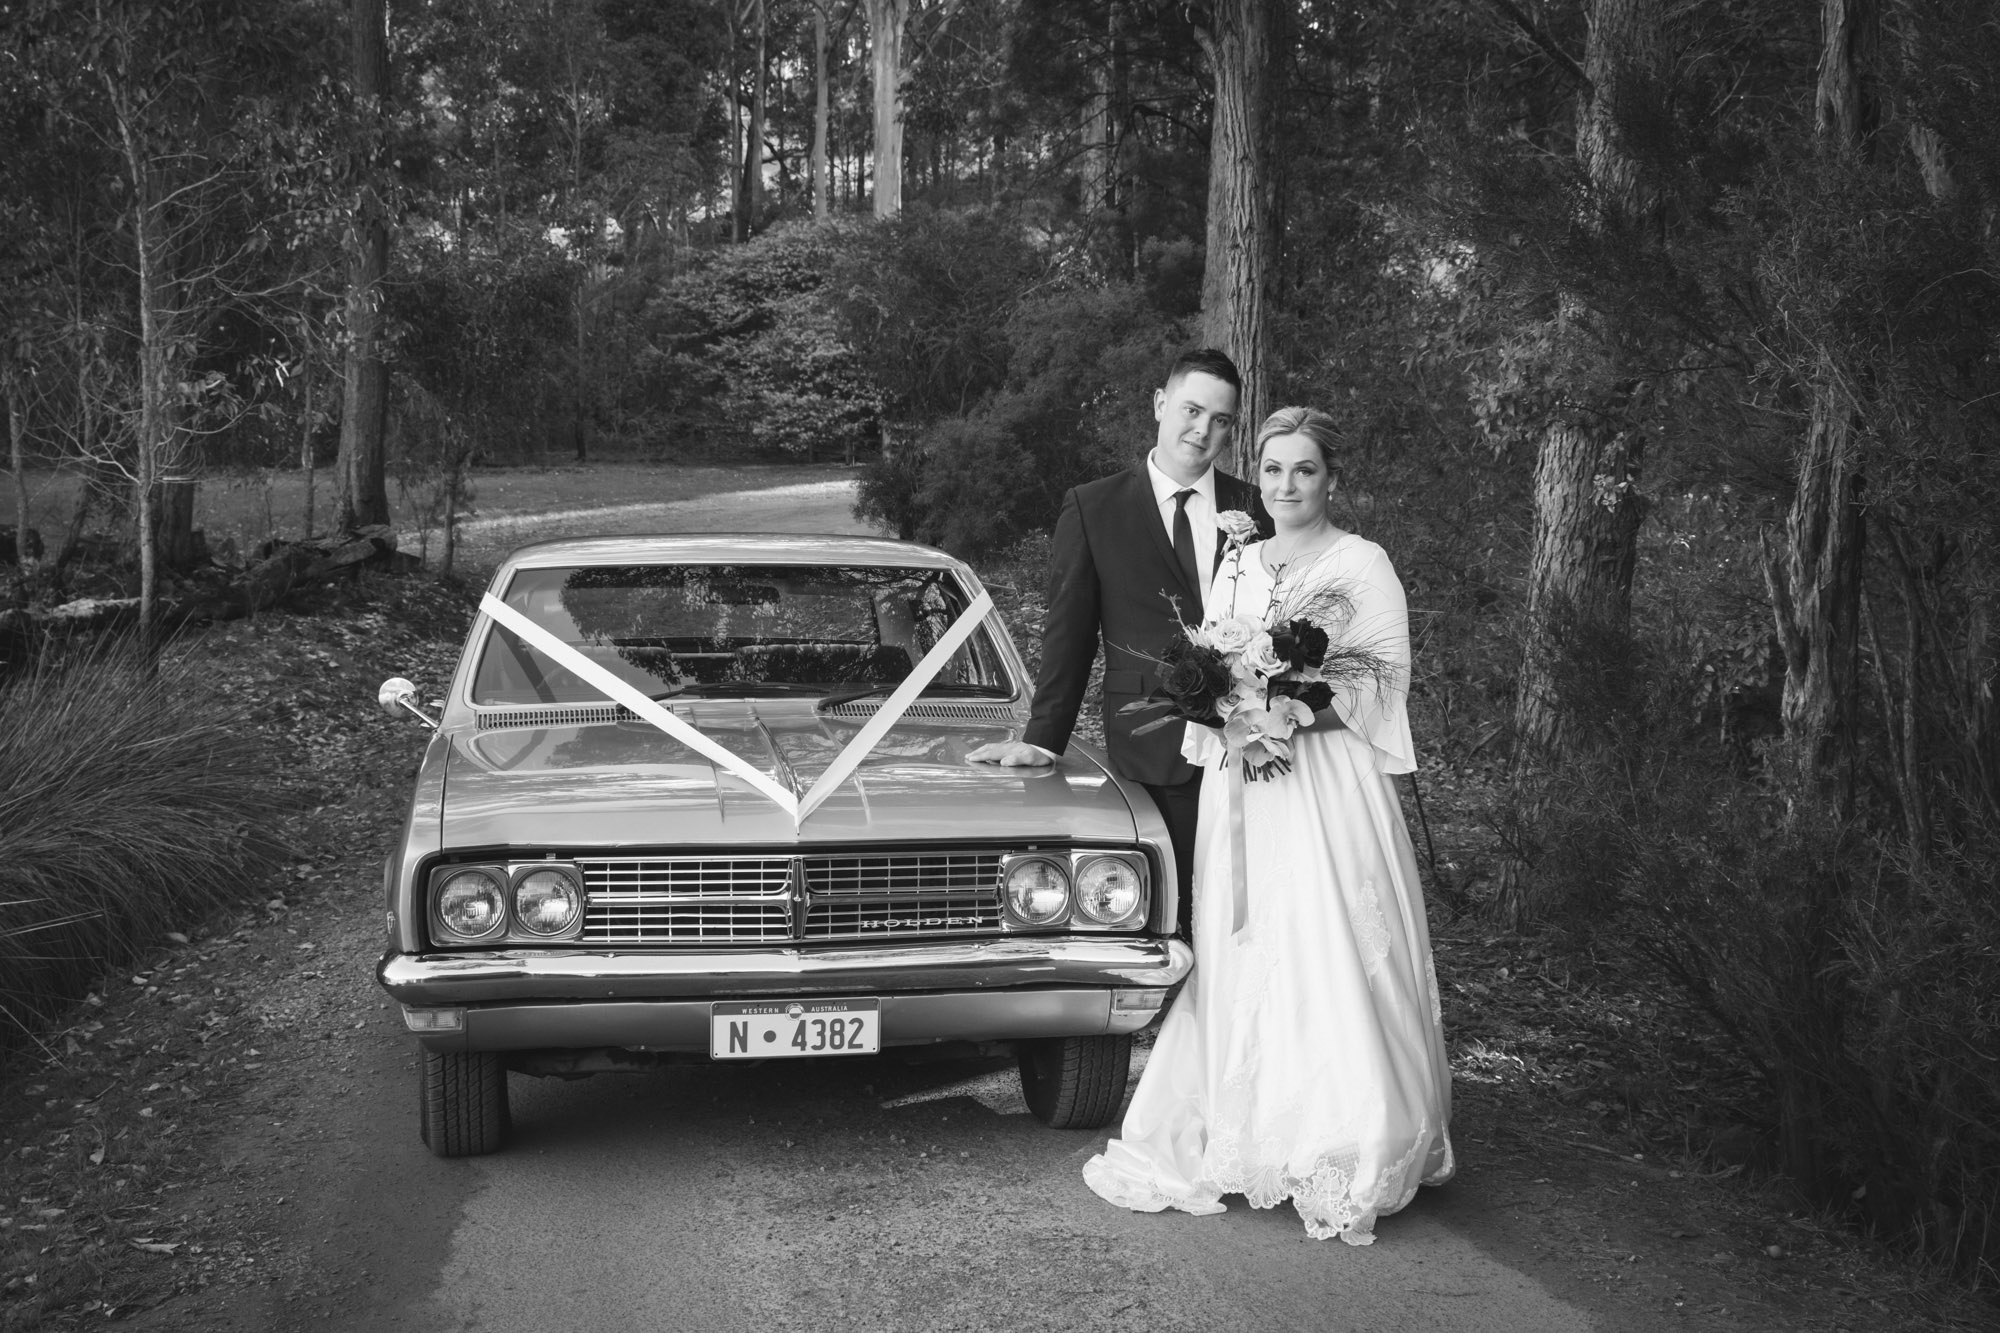 Angie-Roe-Photography-Wedding-Perth-Northam-Wheatbelt-Country-Rural (89).jpg